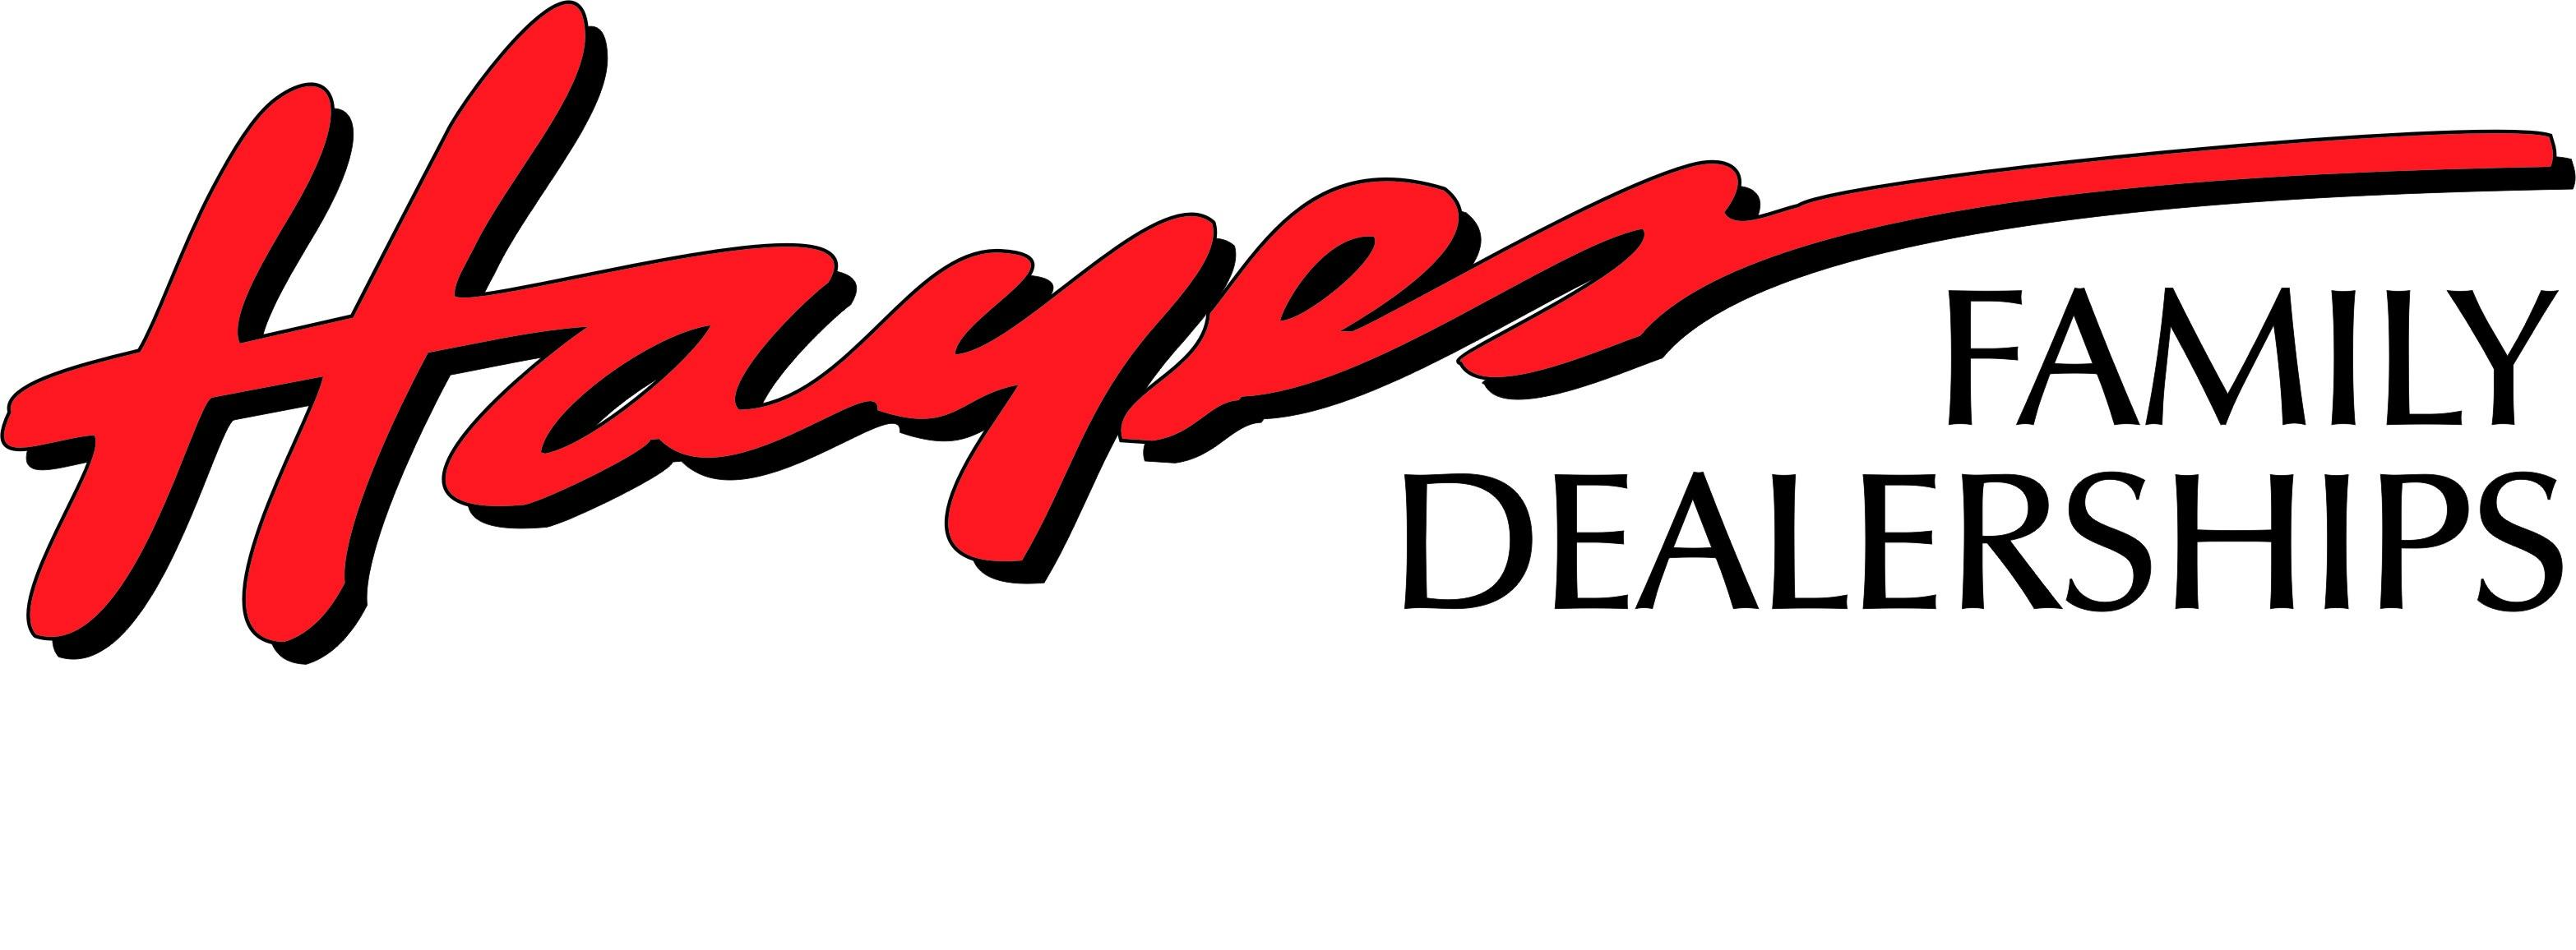 Hayes Jeep Kalamazoo Mi >> Hayes Chrysler Dodge Jeep Ram 2017 And Used Cars In | Autos Post